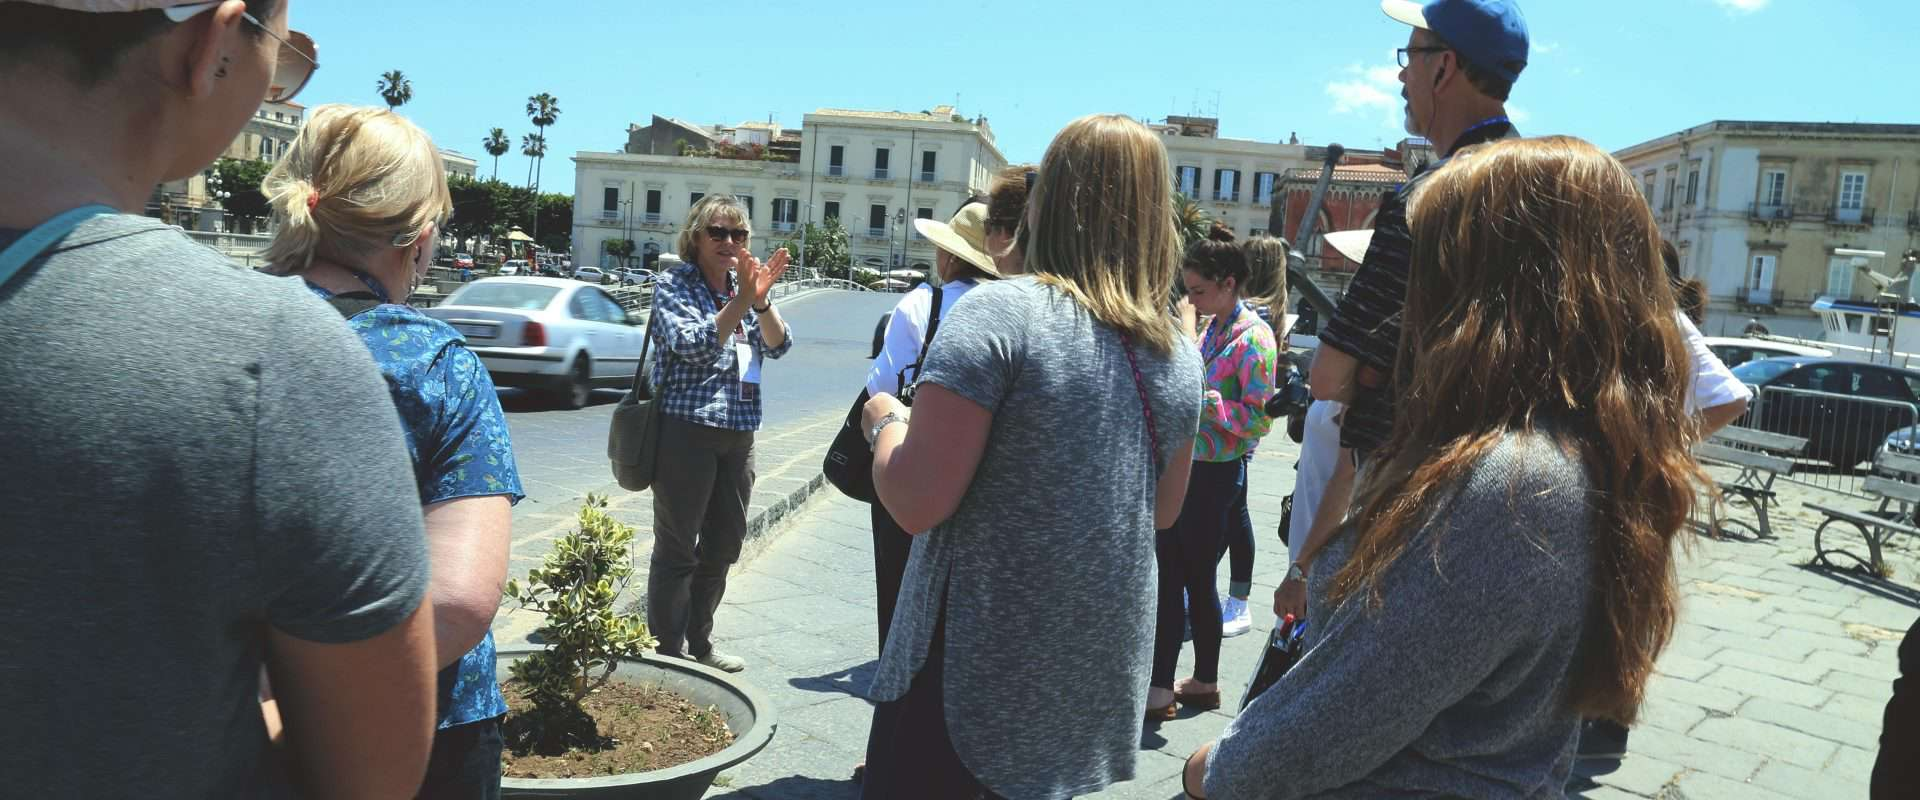 WPU Students studying abroad in Italy.